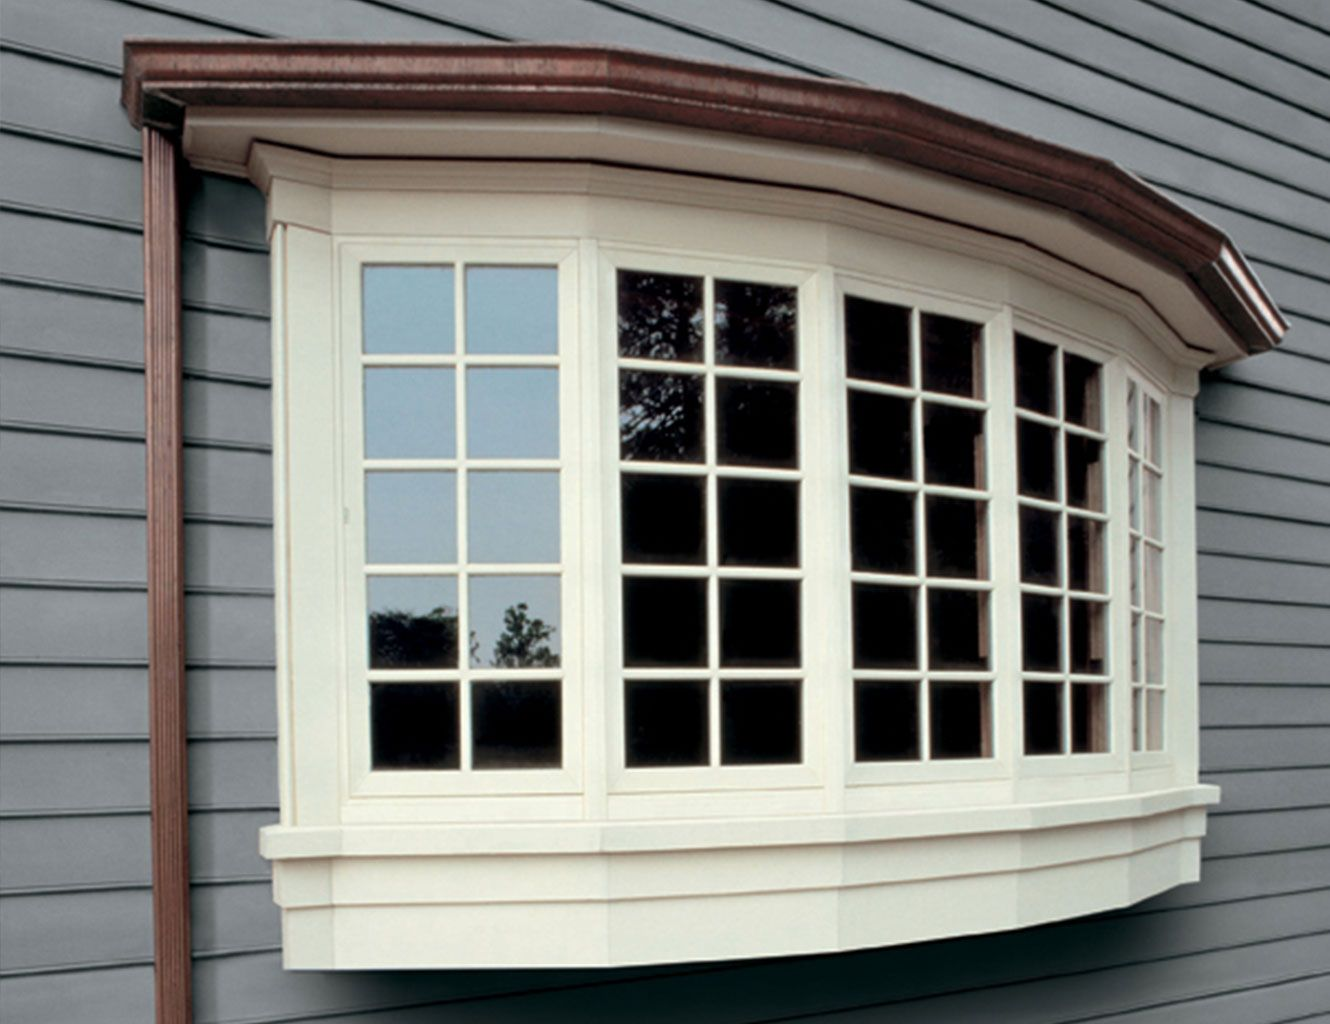 Signs You Need New Windows In Your Home Having Windows On Your Home That Are Not Functioning Properly Have B Windows Exterior Bow Window Bay Window Exterior